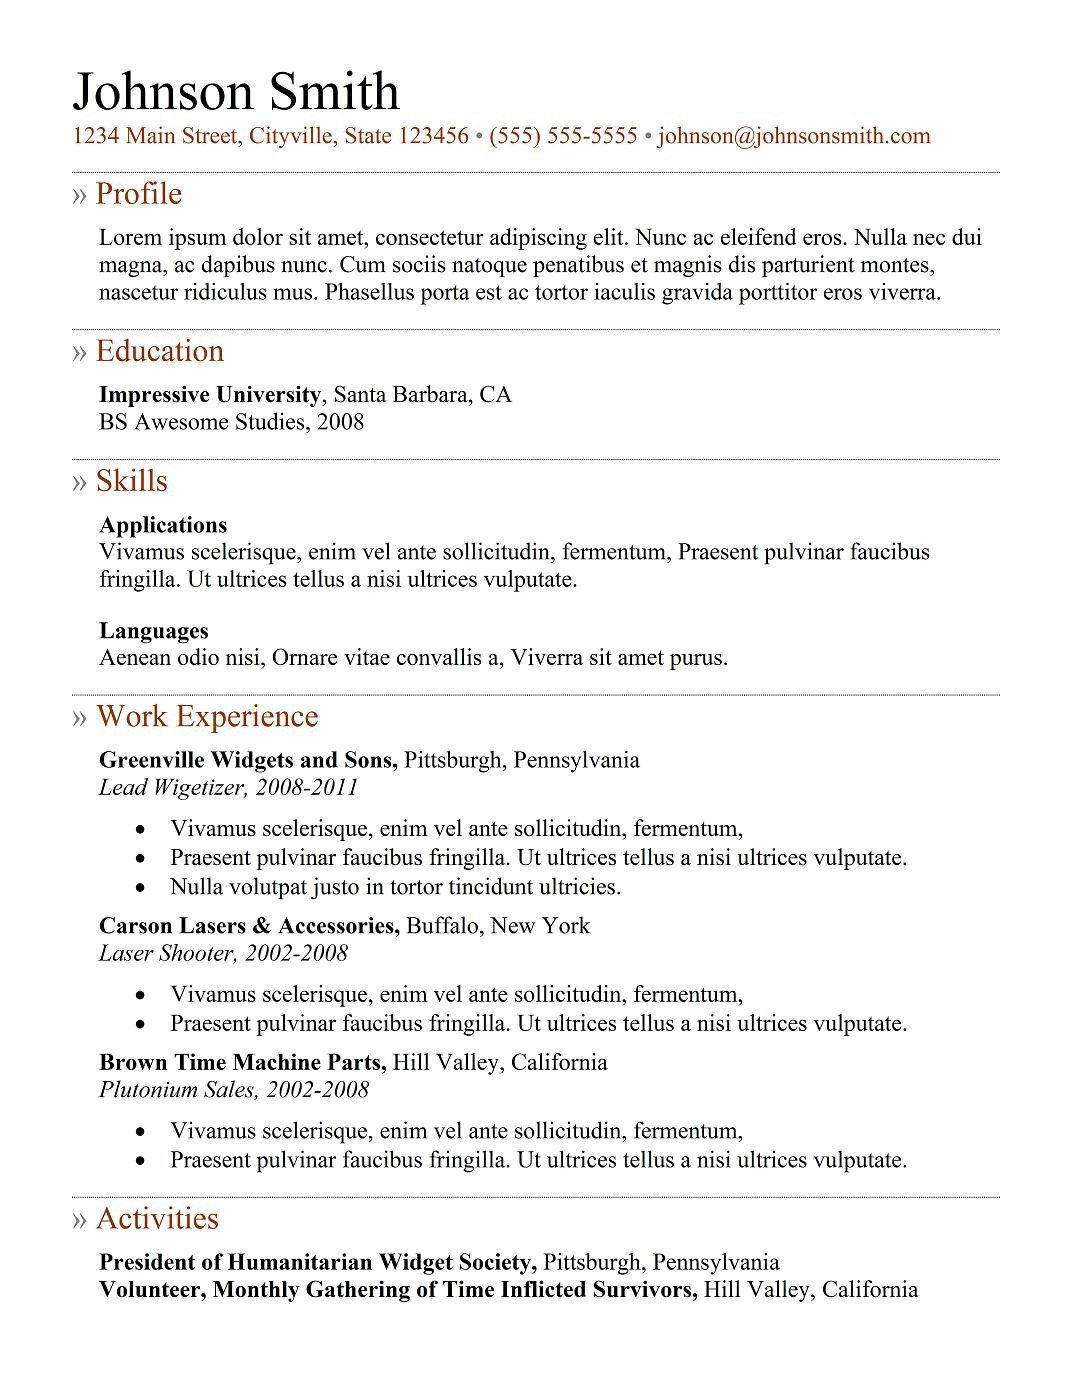 Free Template for Resume 9 Best Free Resume Templates for Freshers